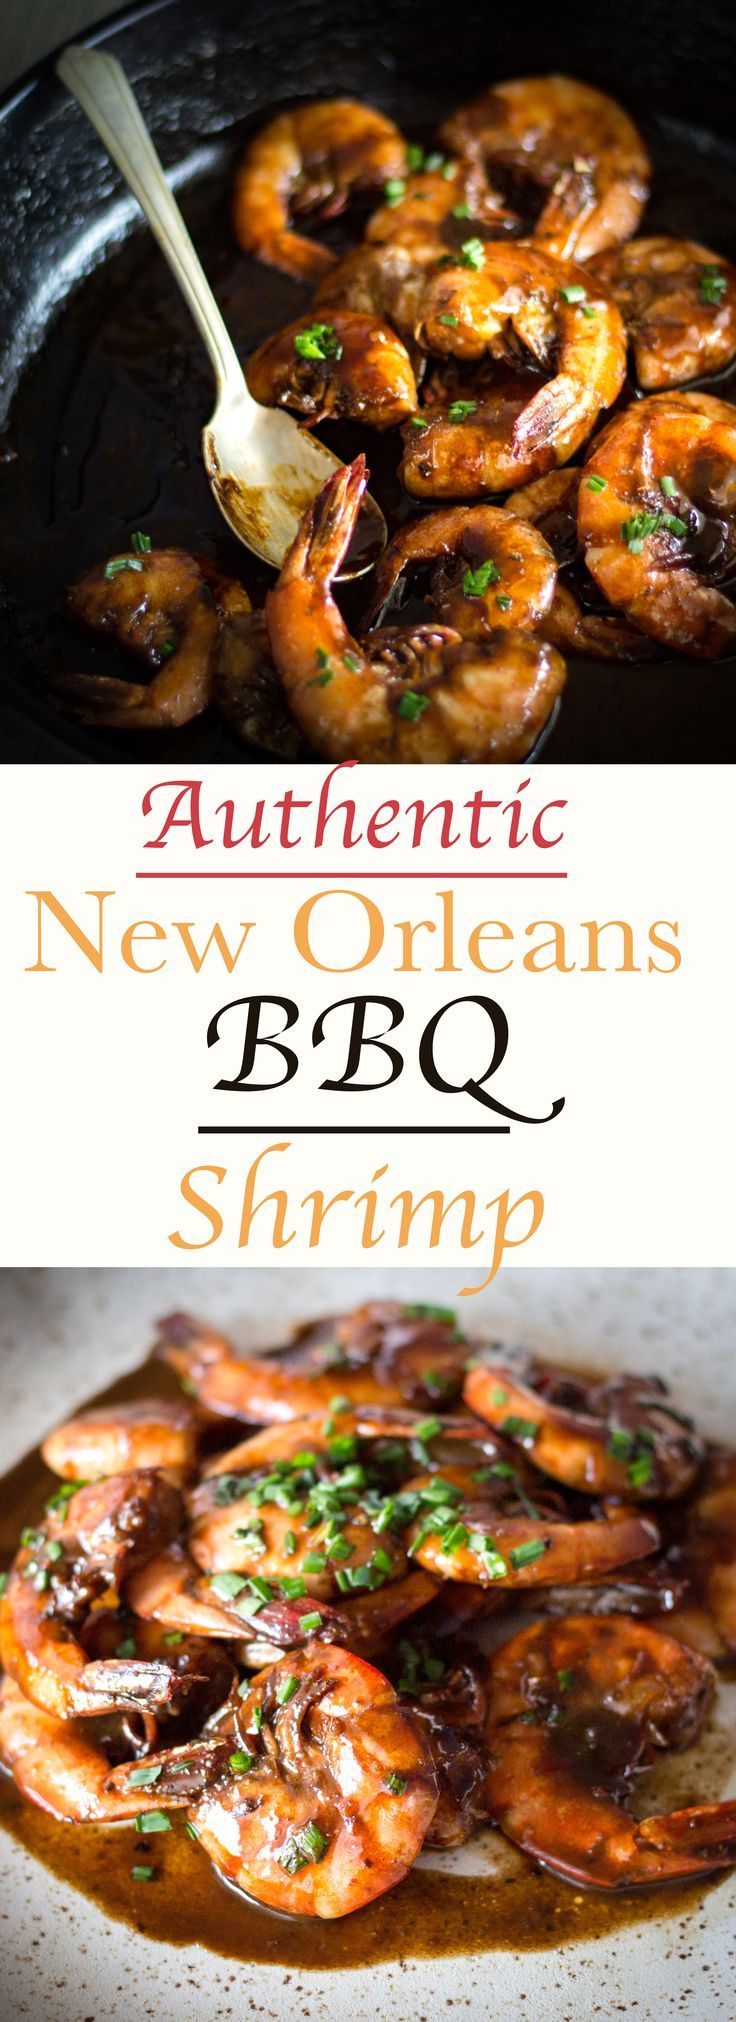 New Orleans BBQ Shrimp! Creamy and buttery sauce to coat sweet juicy shrimp! Soak up the liquid with some crusty bread or biscuits!